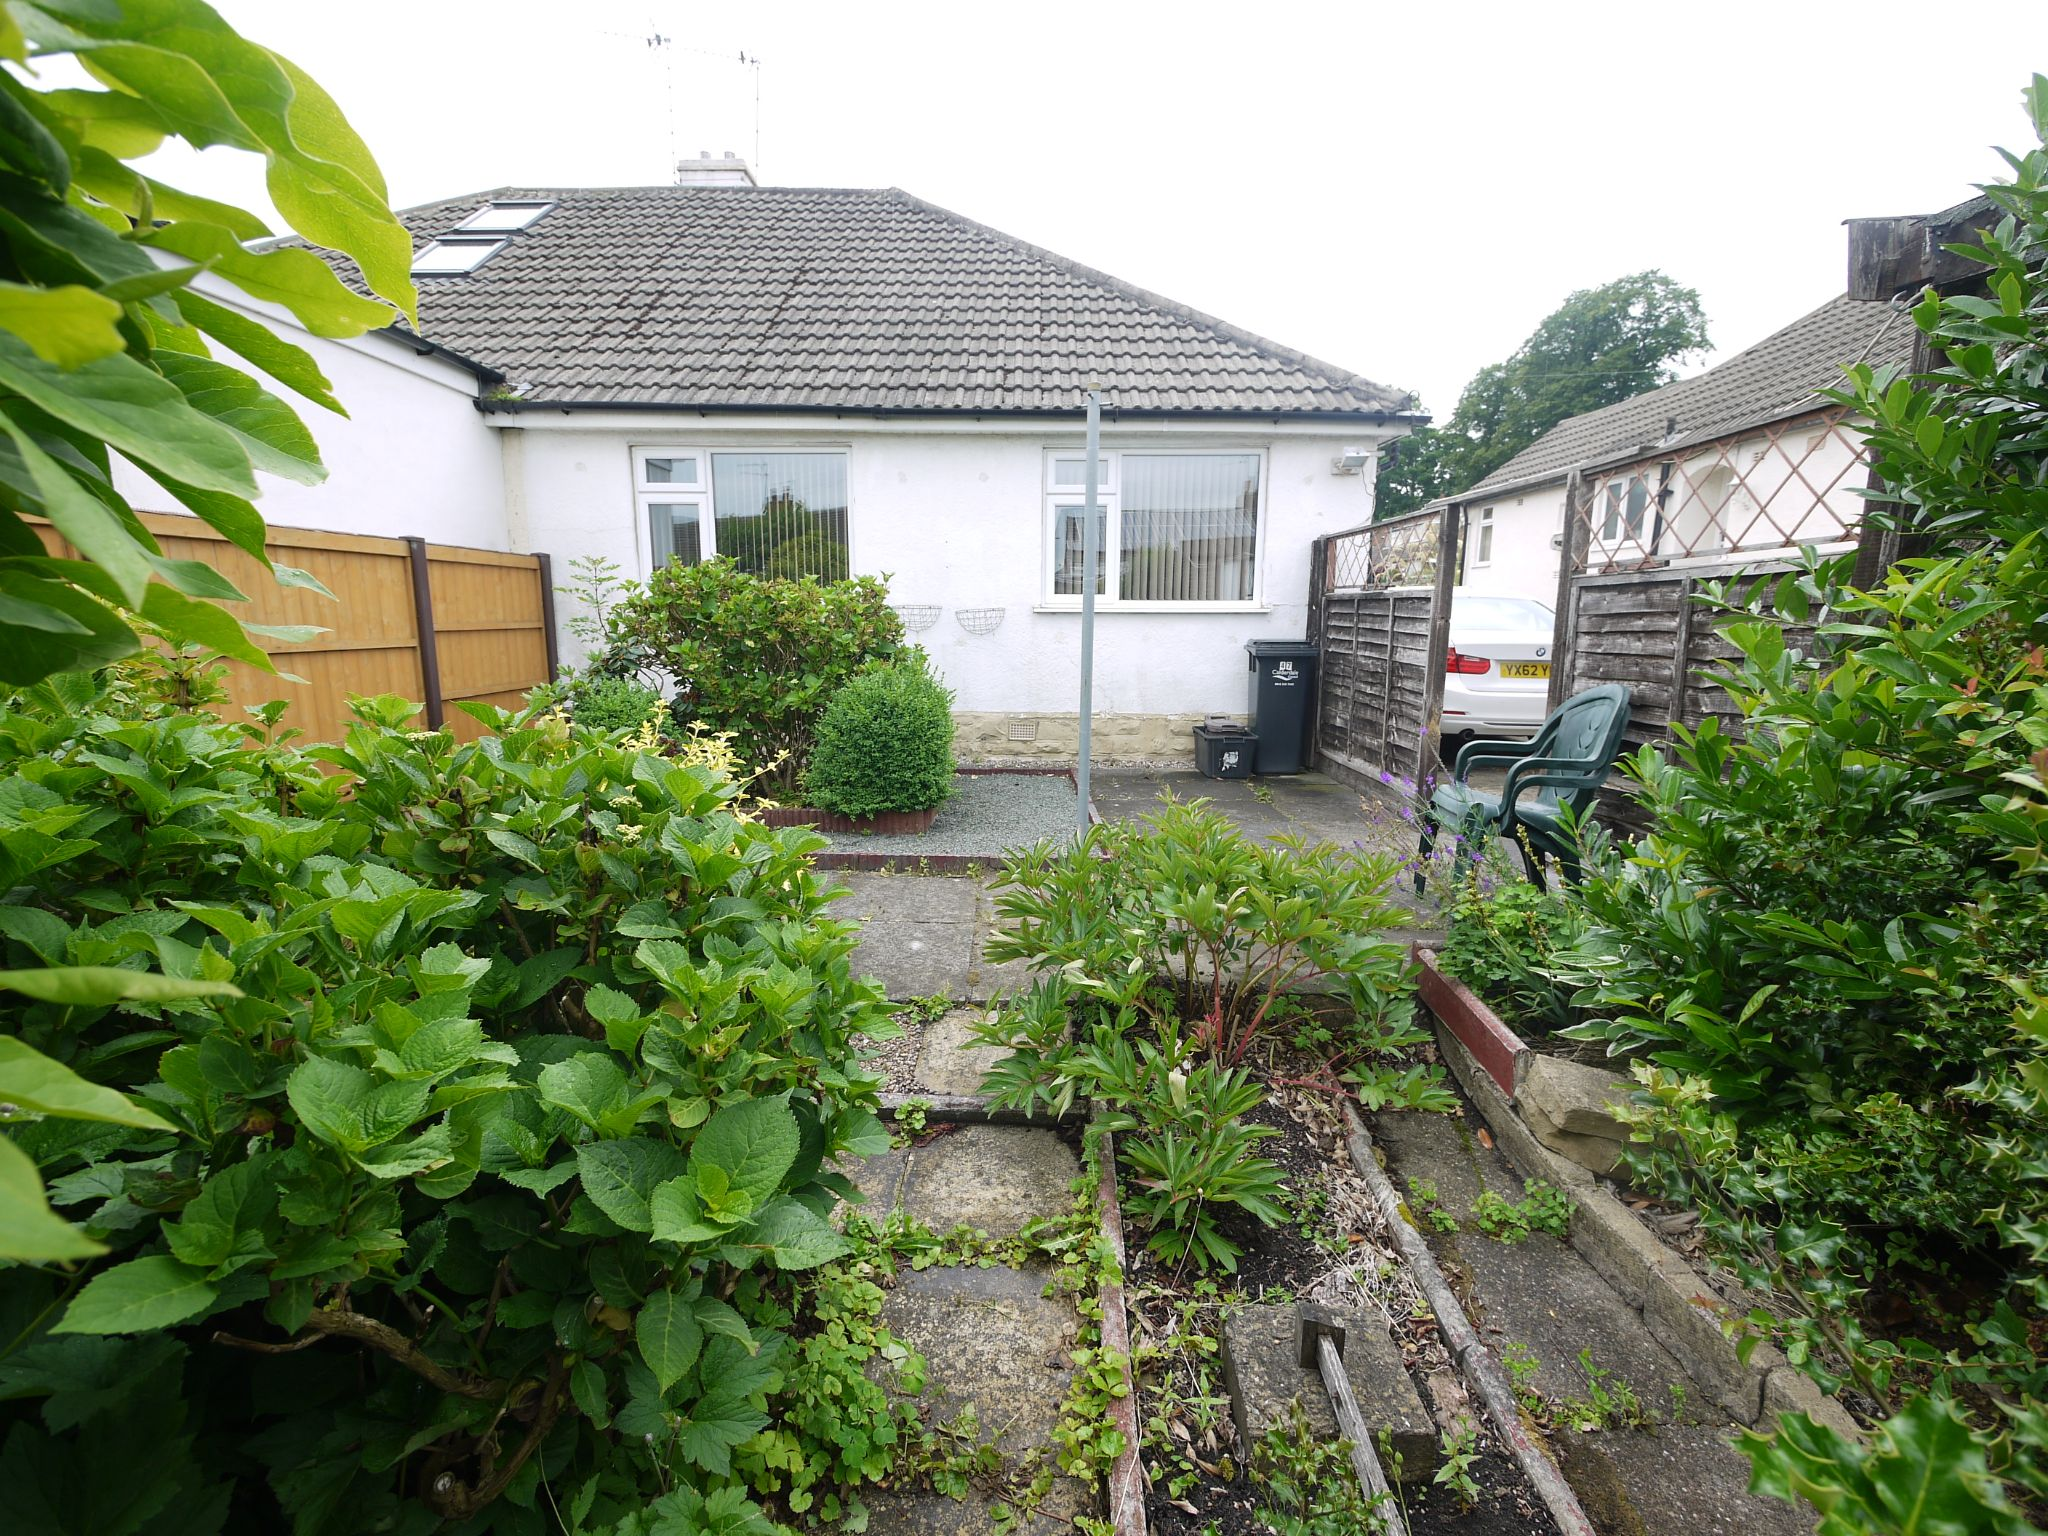 2 bedroom semi-detached bungalow SSTC in Brighouse - Rear.